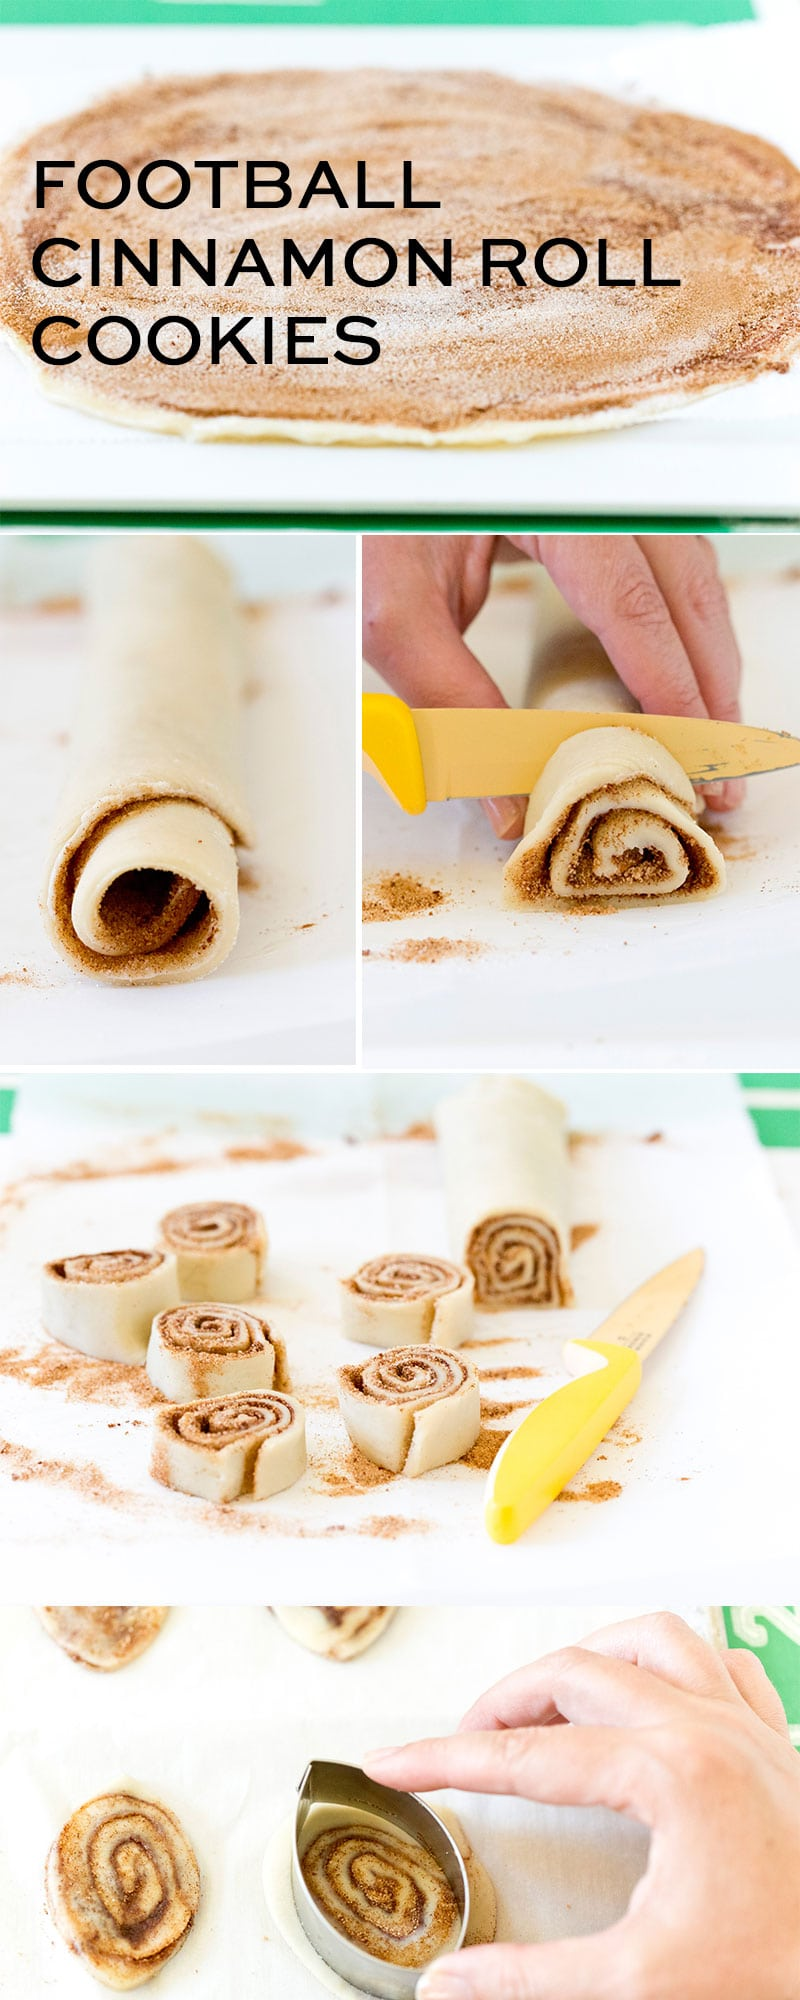 Step-By-Step Instructions for making delicious Football Cookies, that taste like Cinnamon Rolls, the perfect treat for tailgates!